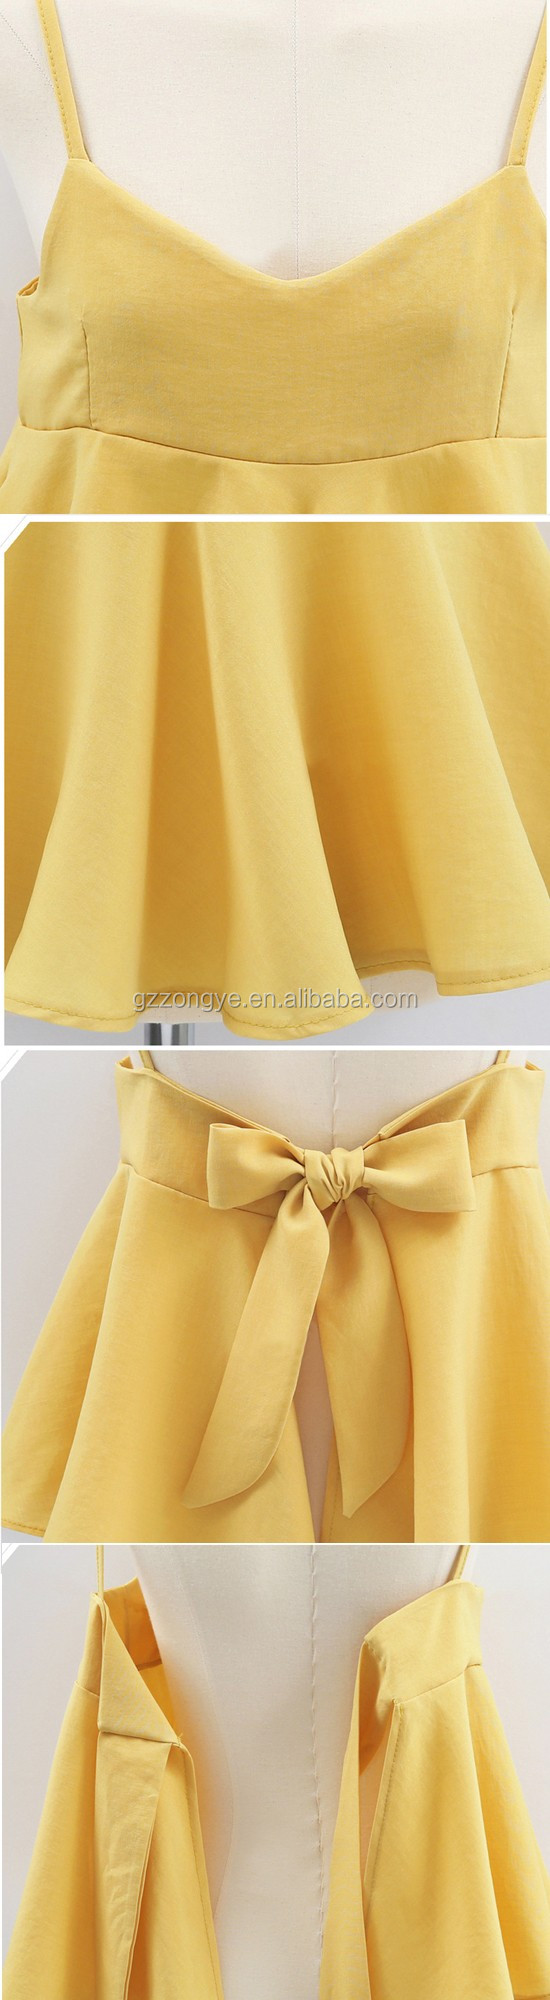 colorful latest design shoulder-straps whosale bowknot whosale summer women blouse